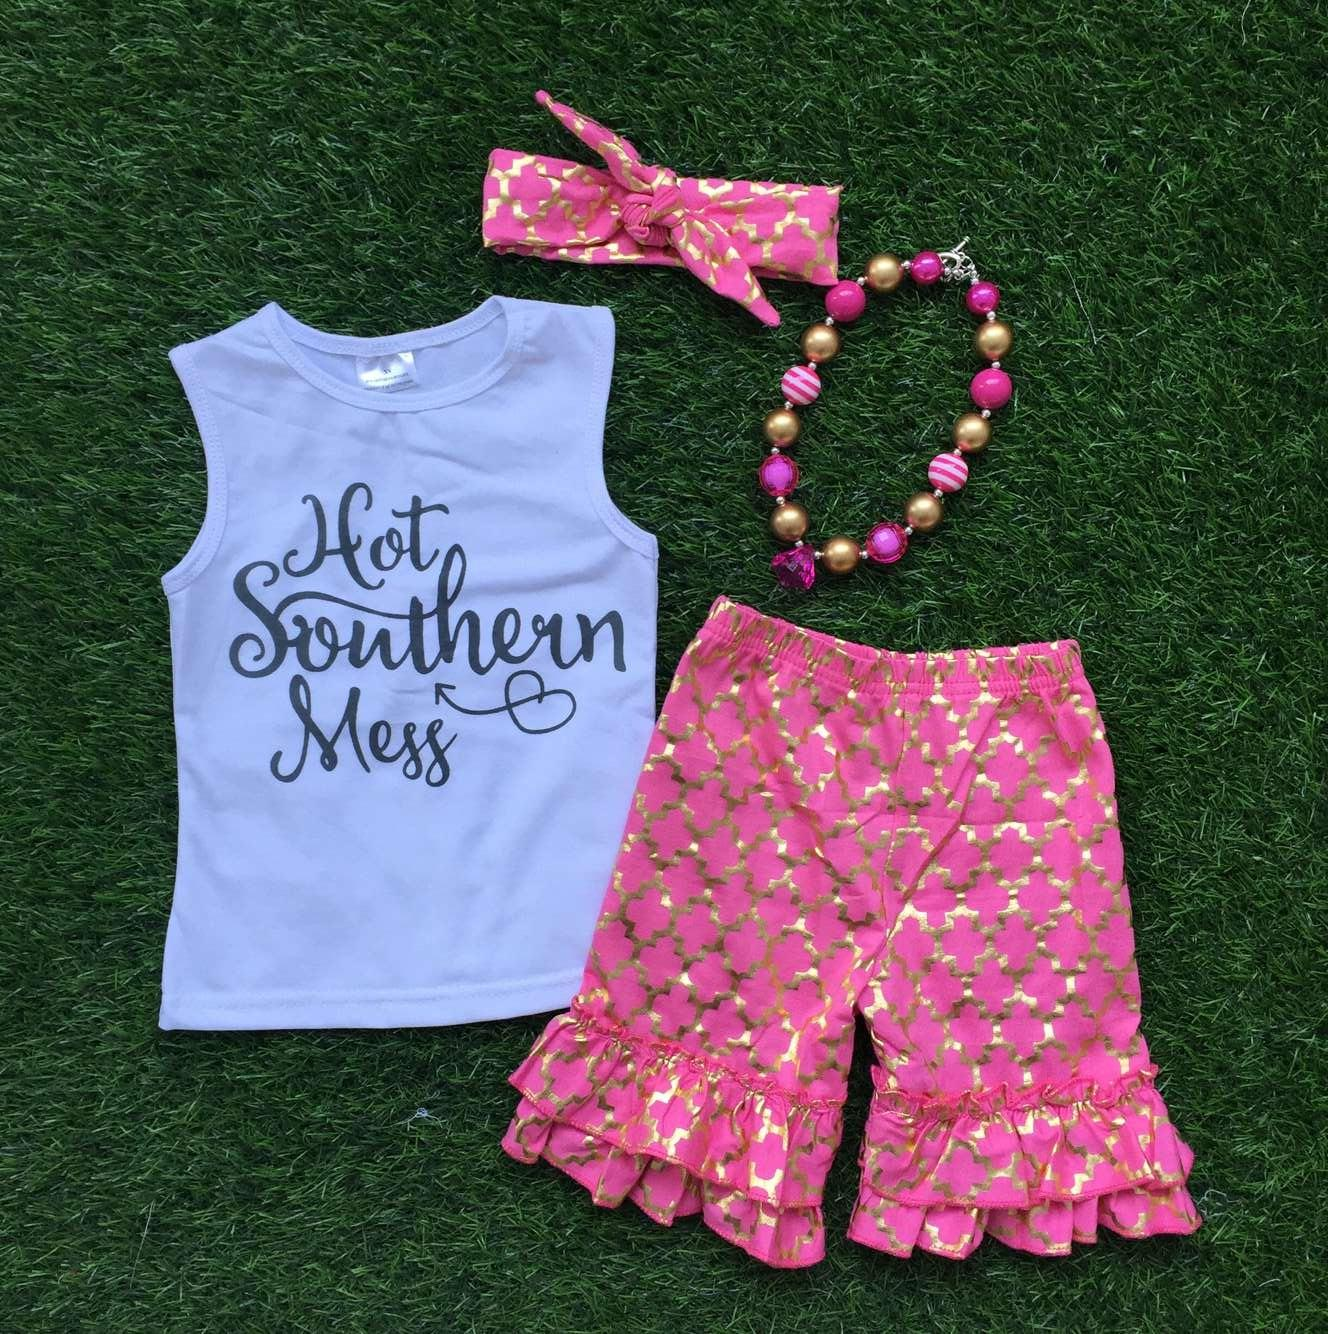 2019 2016new Baby Girls Summer Clothes Boutique Clothing Girls Hot Southern  Mess Outfits With Necklace And Headband From Arielchow ca48b5e21